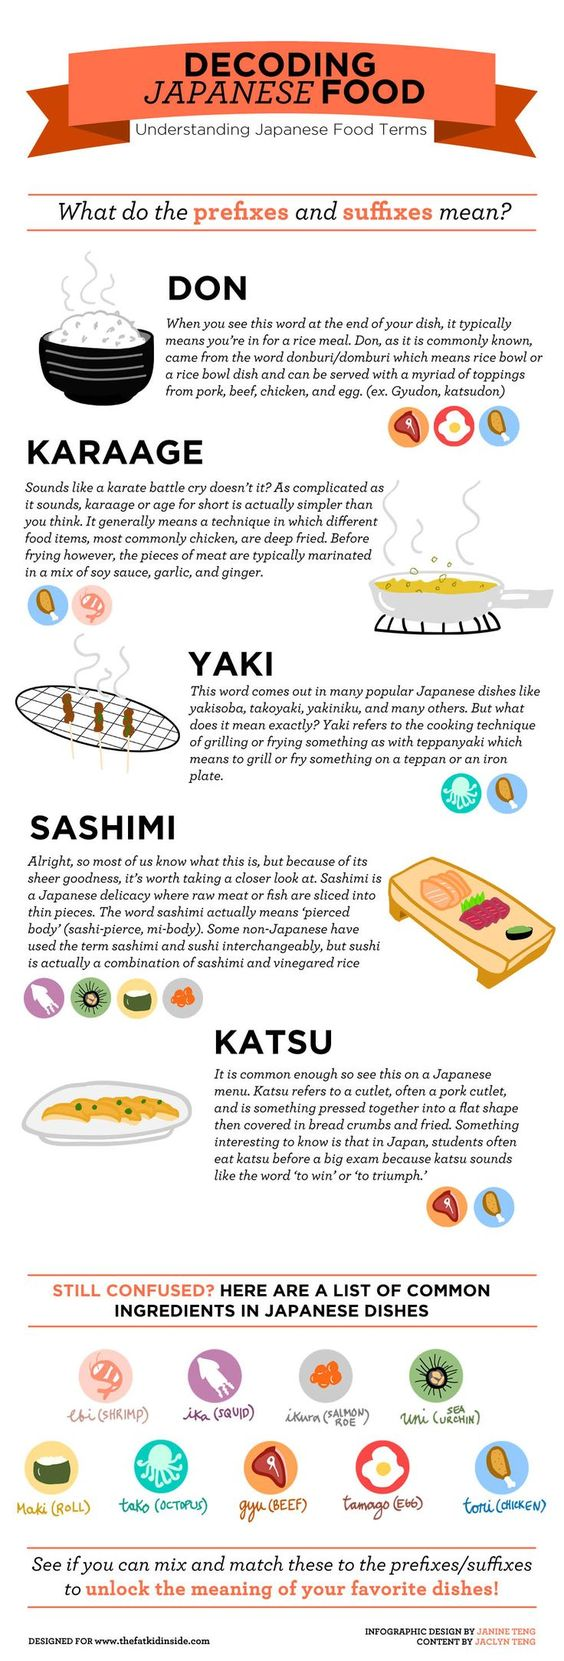 Decoding Japanese food, what do the prefixes and suffixes mean? -- Japan, Japanese, food, tradition, language, customs, eating, descriptions